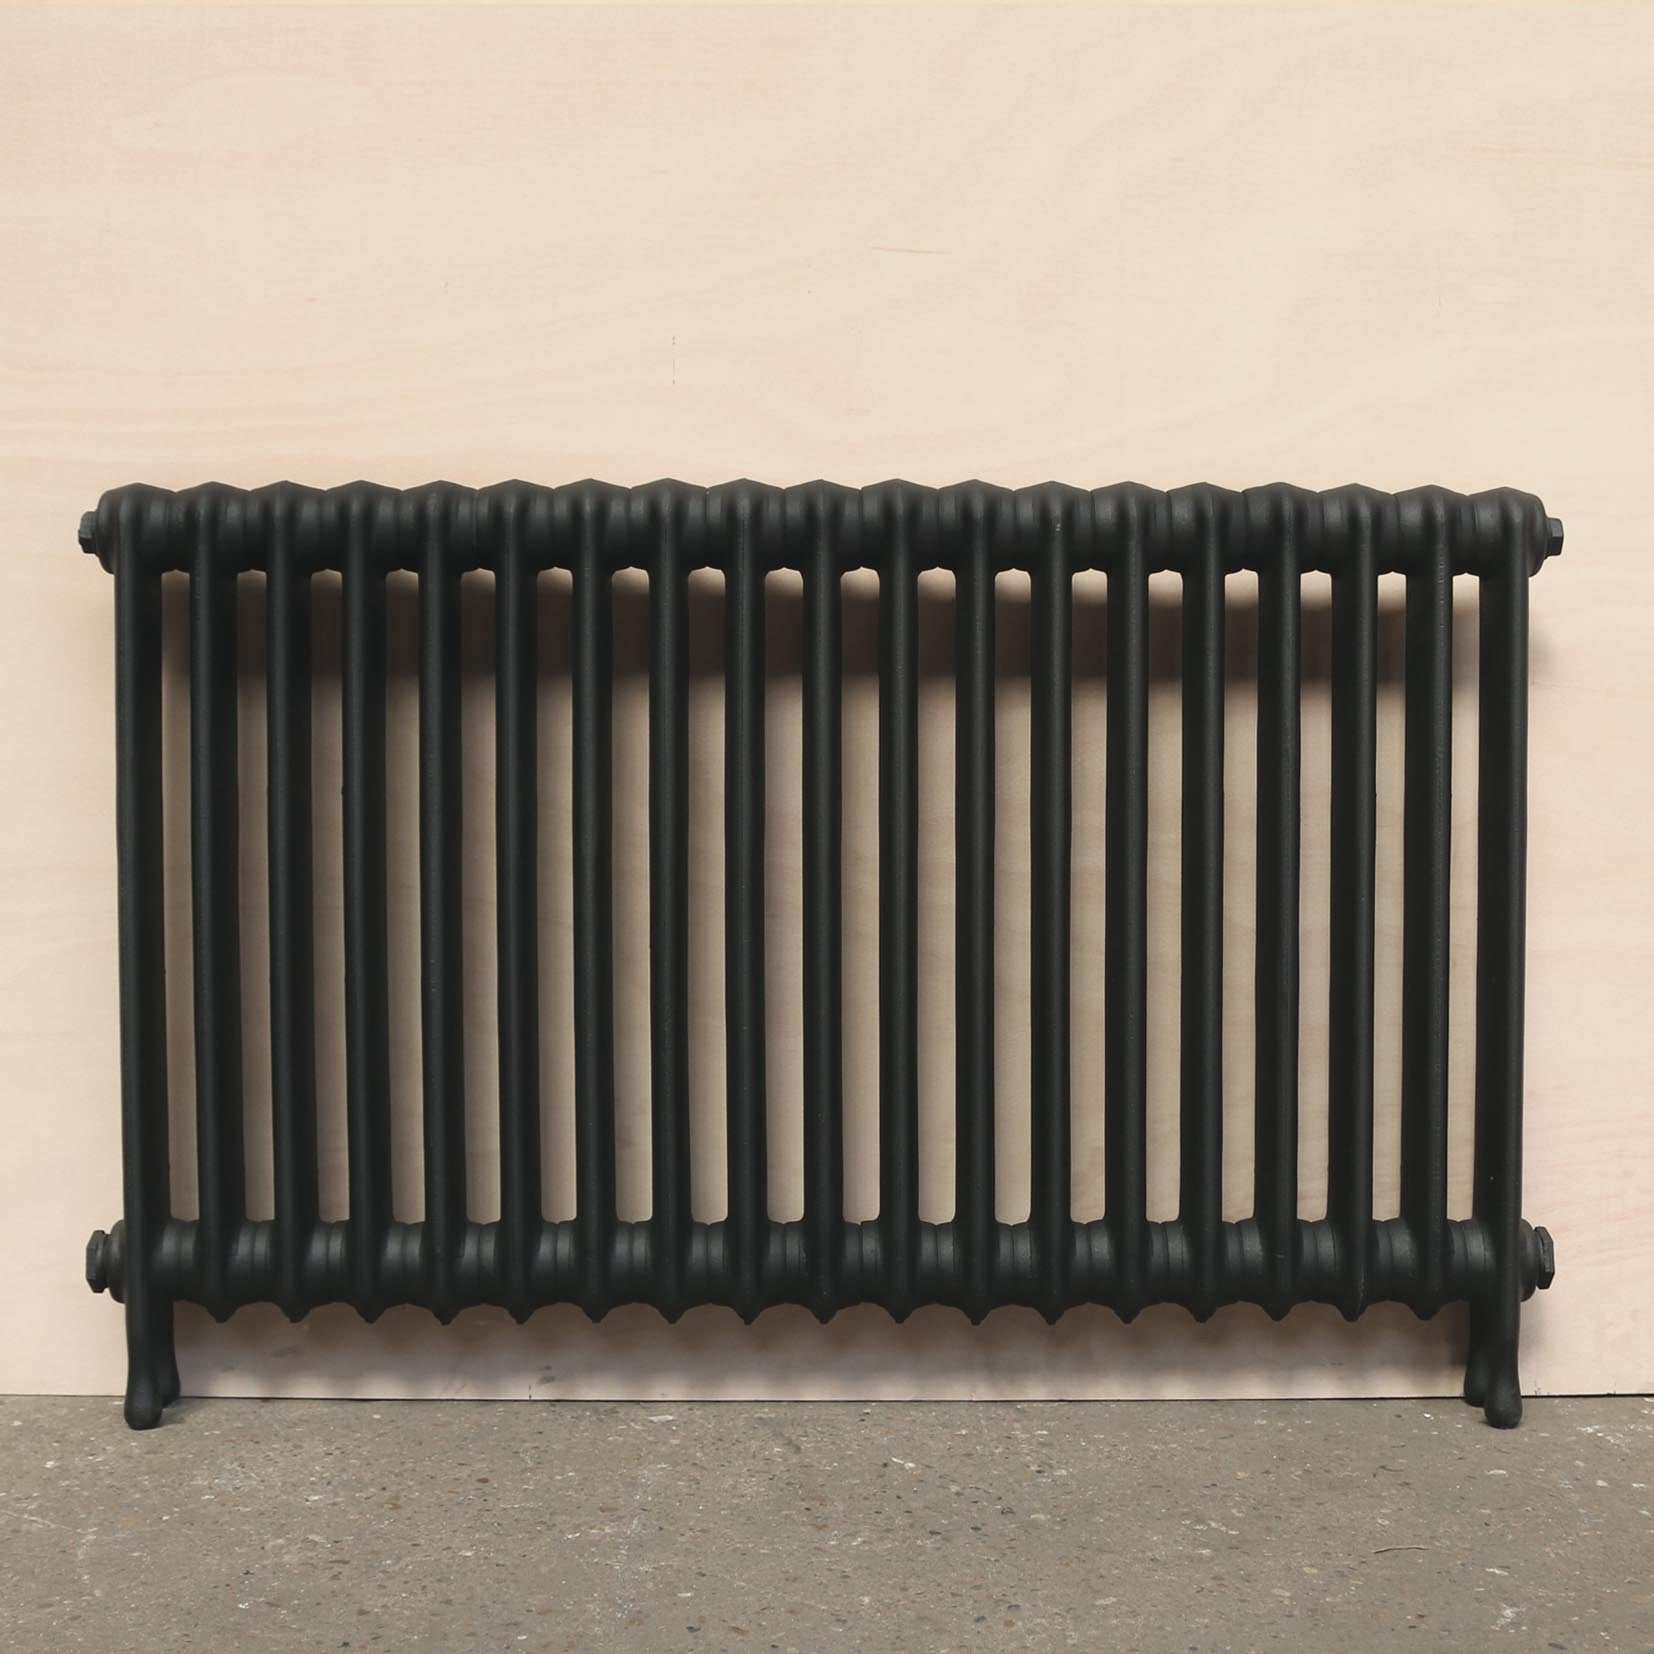 Reclaimed Cast Iron 'Hospital' Radiator